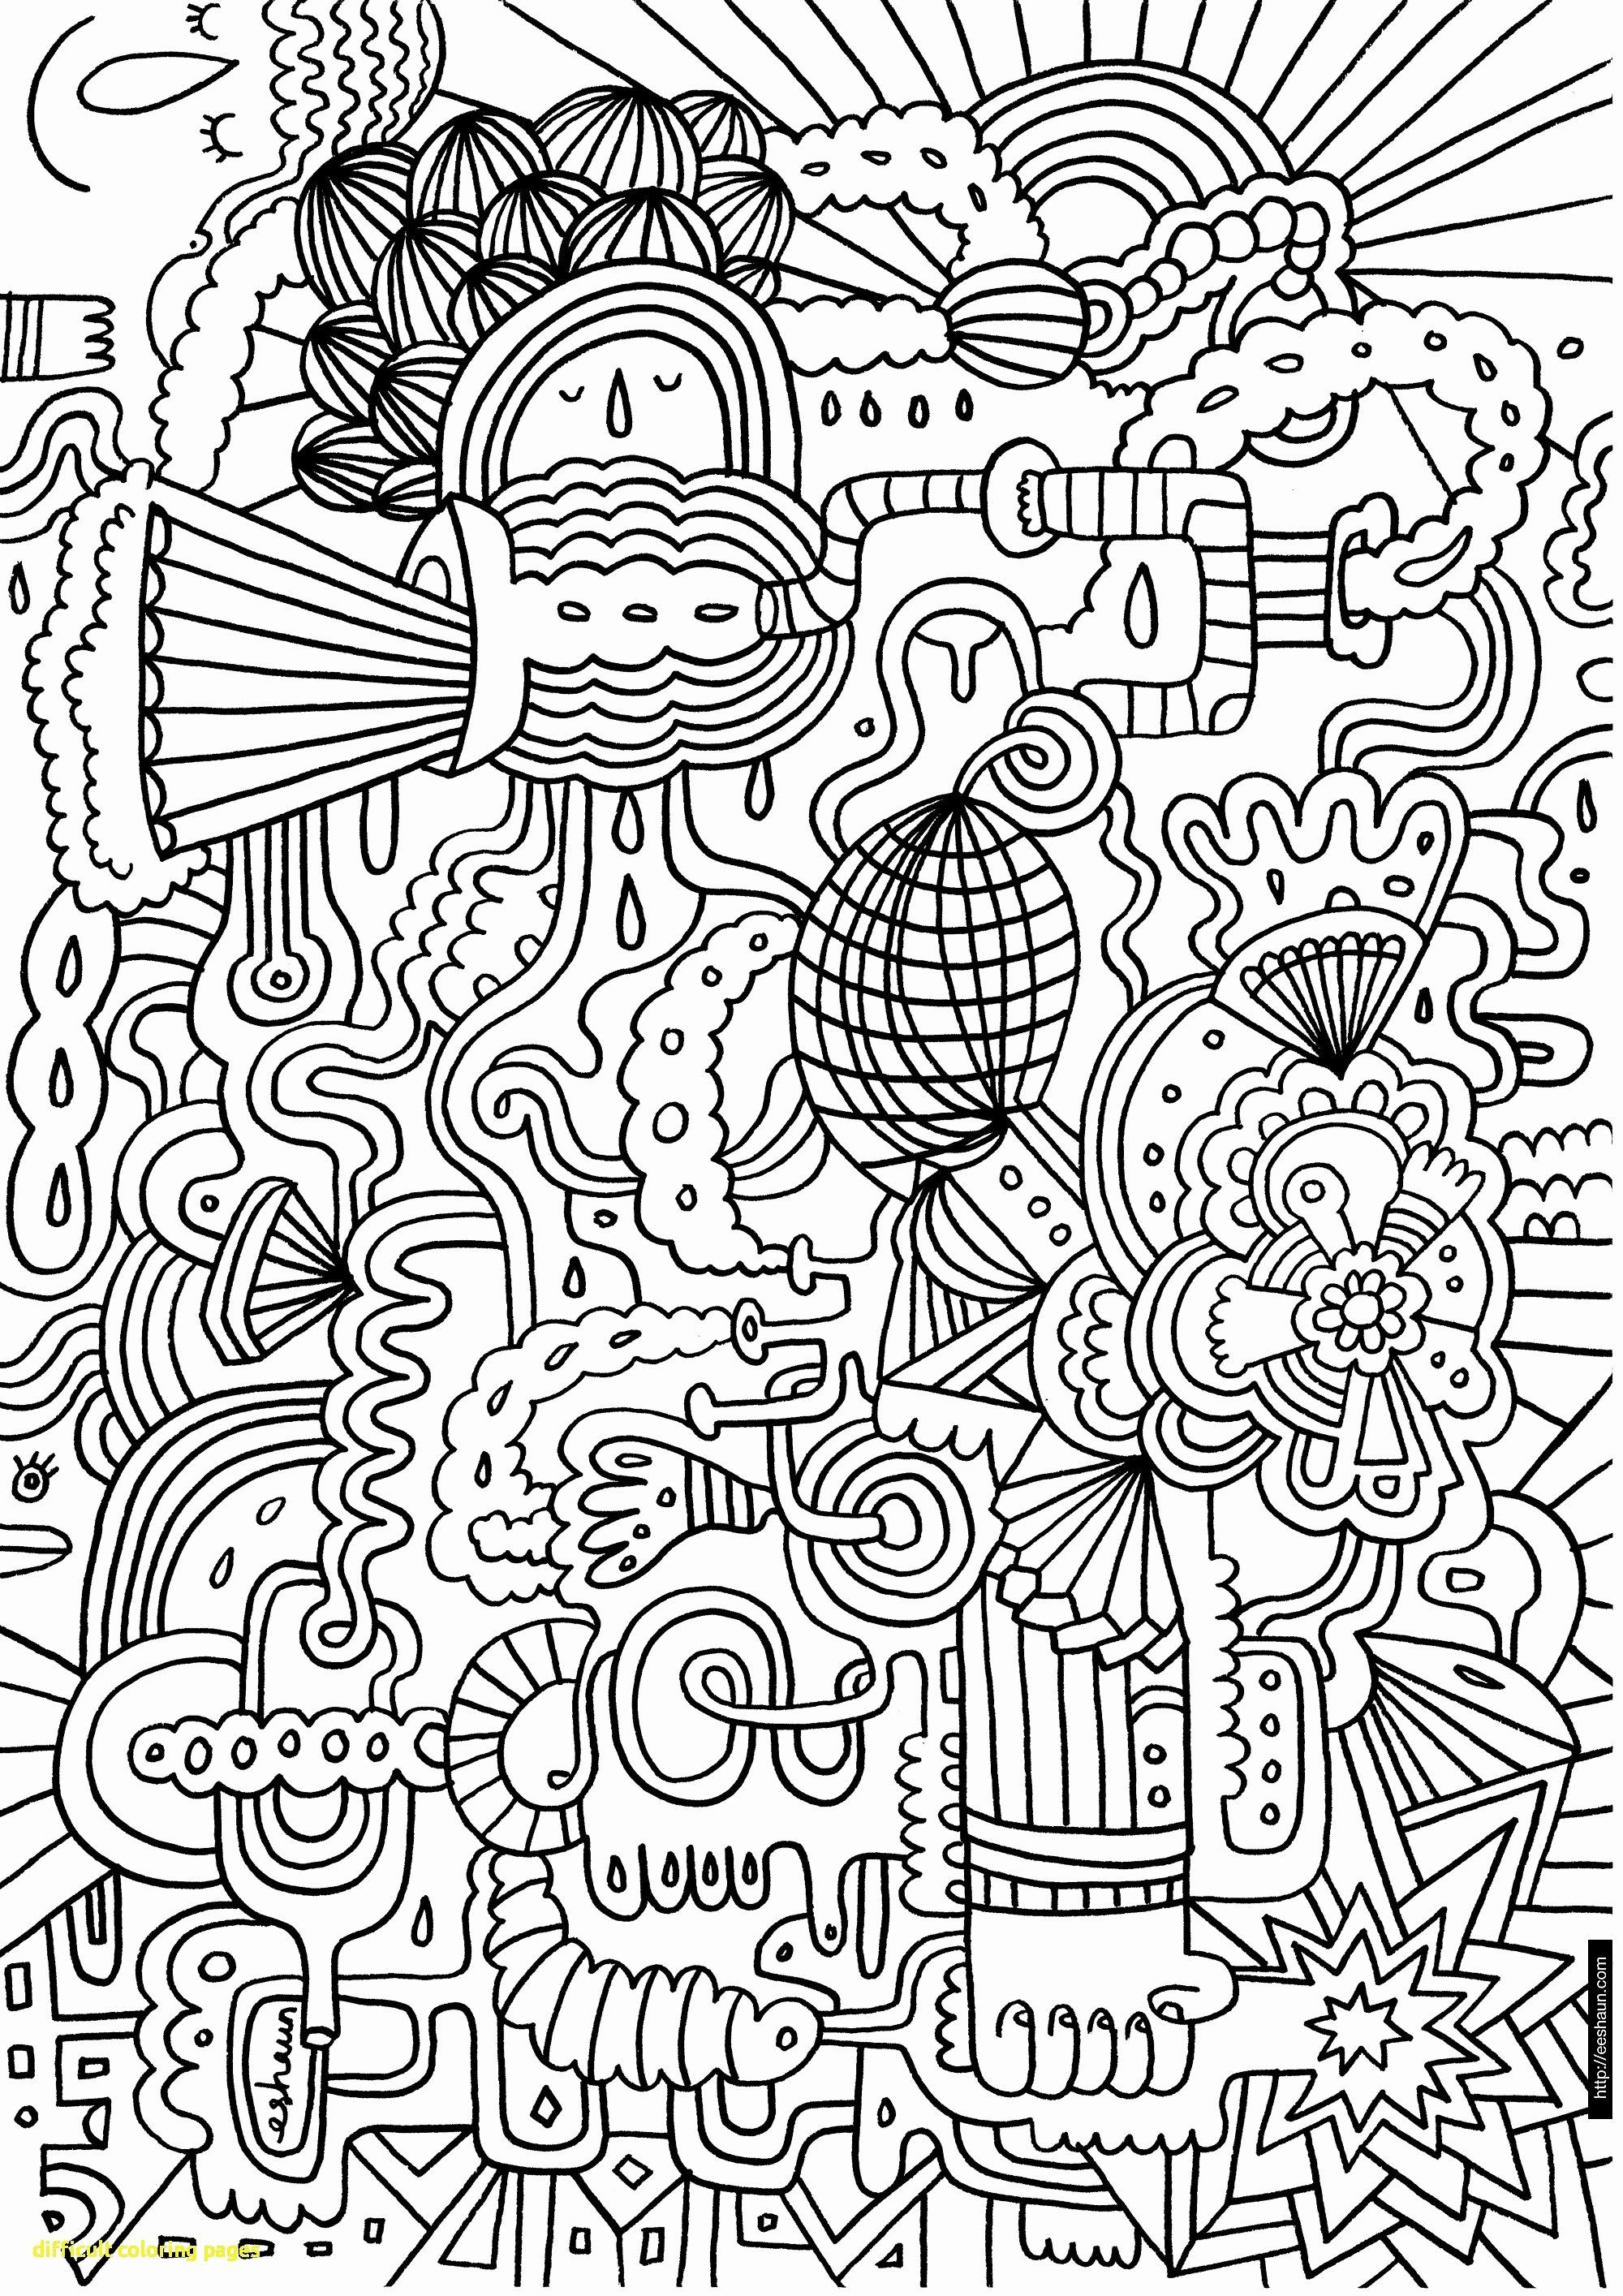 Hard Coloring Pages Pdf Lovely Coloring Book World Difficult Coloring Pages Book World Di 2020 Doodle Sketsa Stiker